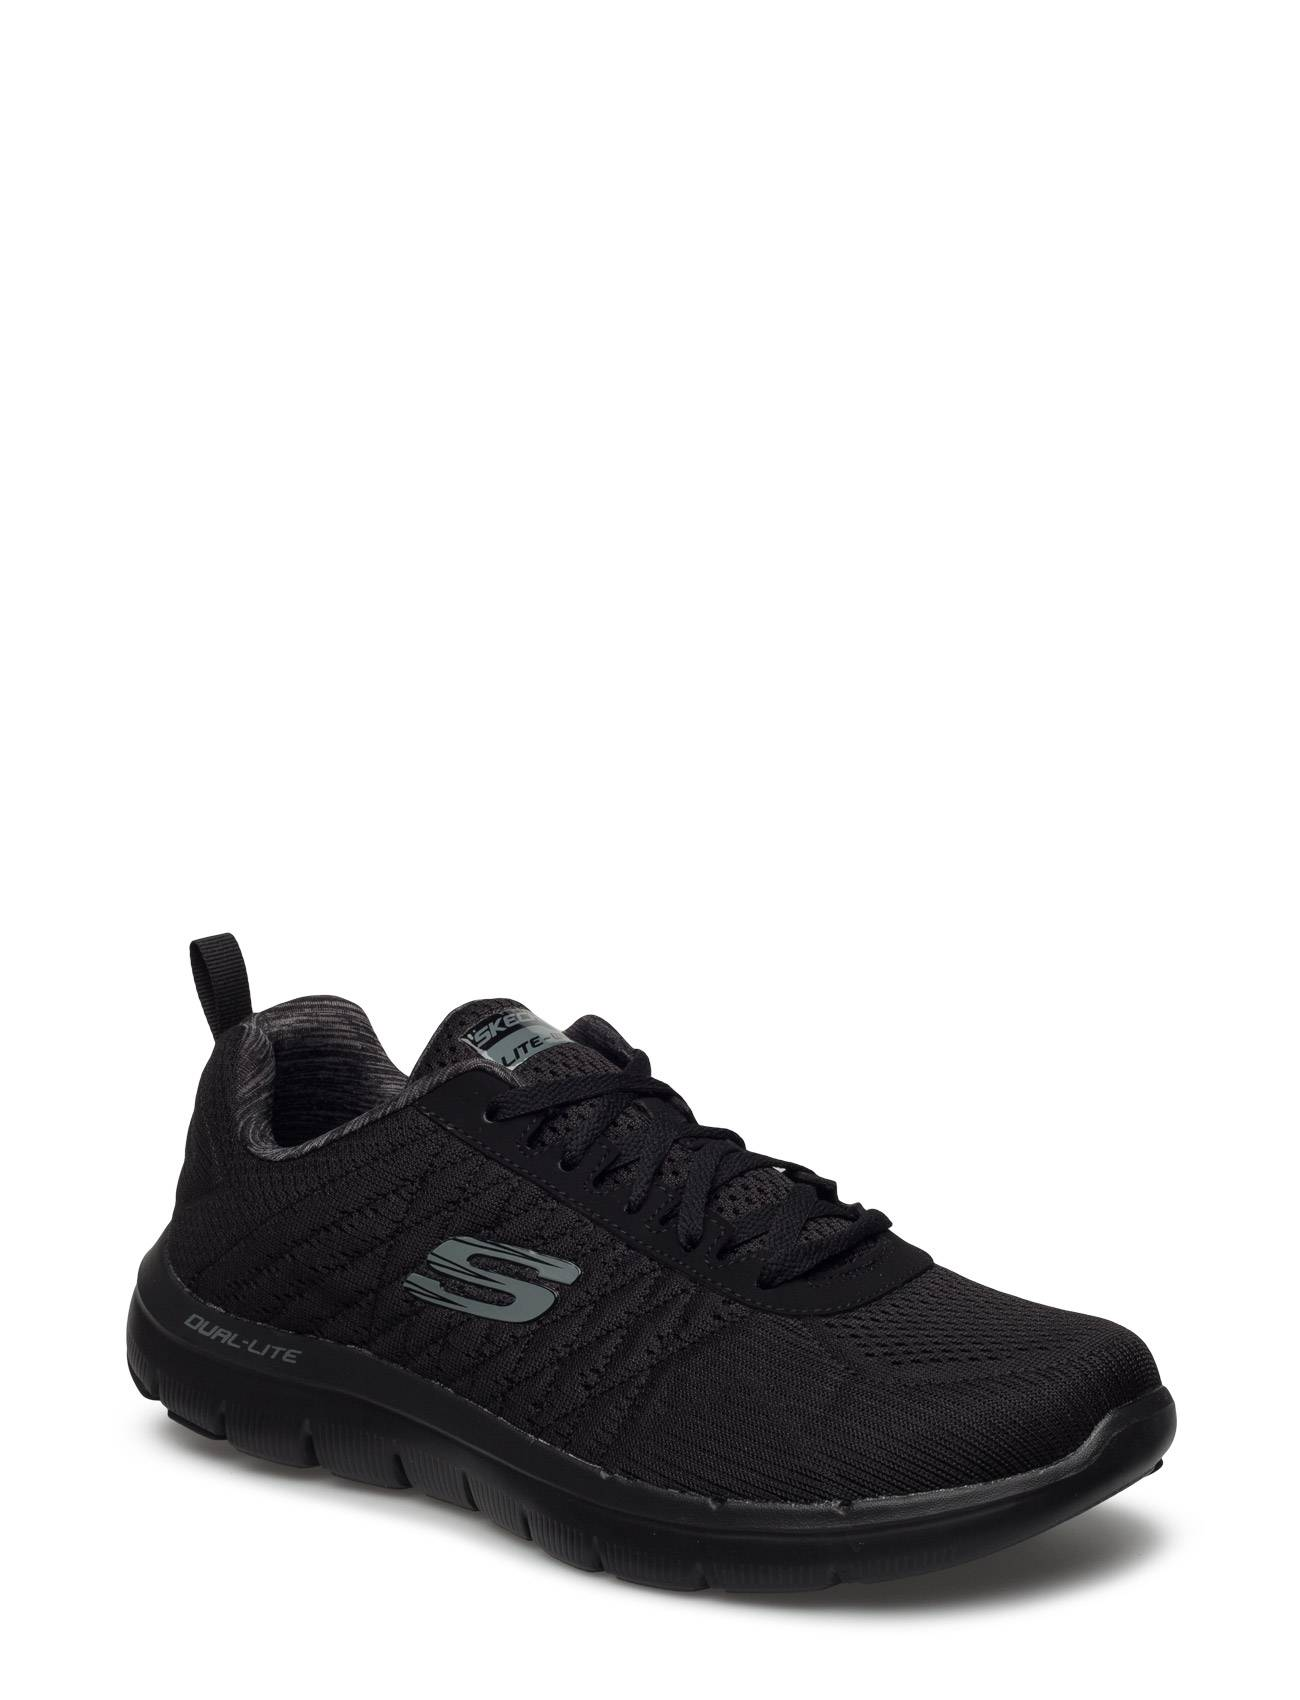 Skechers Mens Flex Advantage 2.0 - The Happs